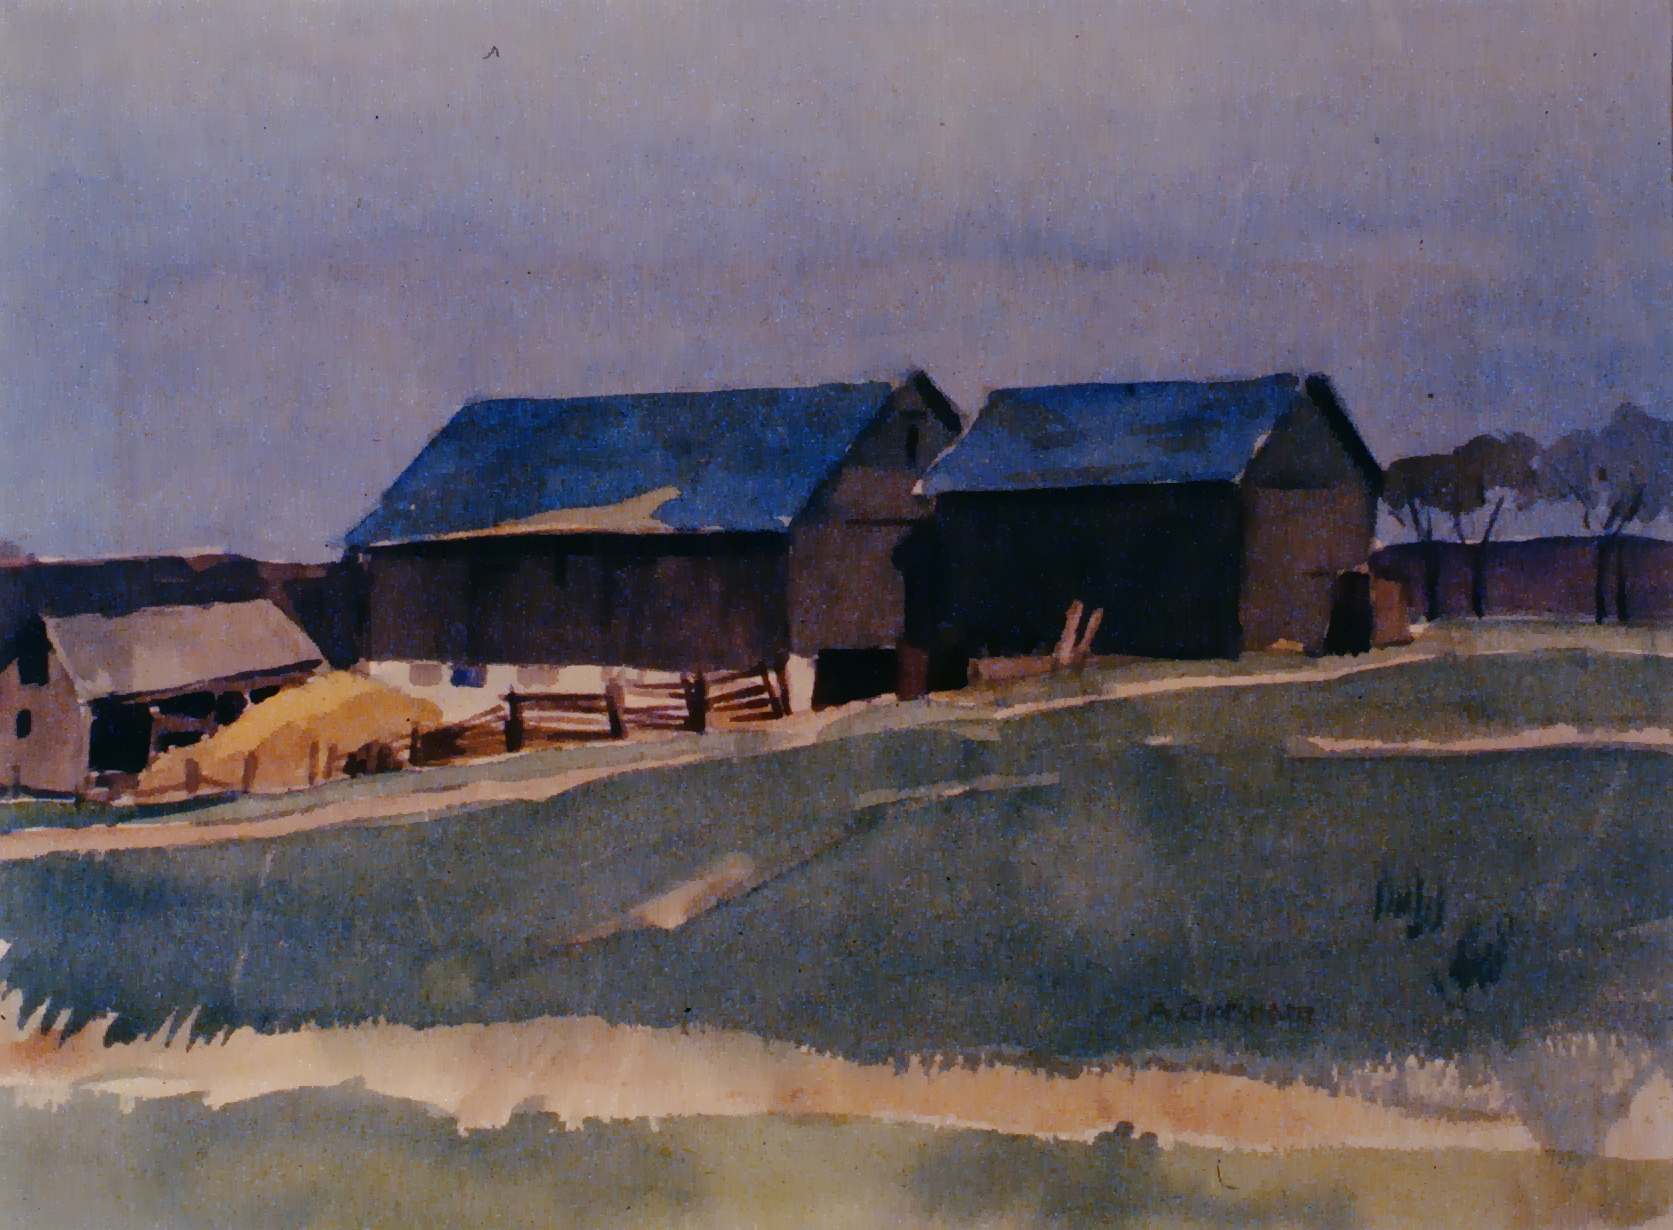 Ontario Barns , n.d., Arthur Gresham, watercolour on paper, 23.1 x 20cm, 1980.03.02. Gift of Mr. and Mrs. Evan Mitchell.